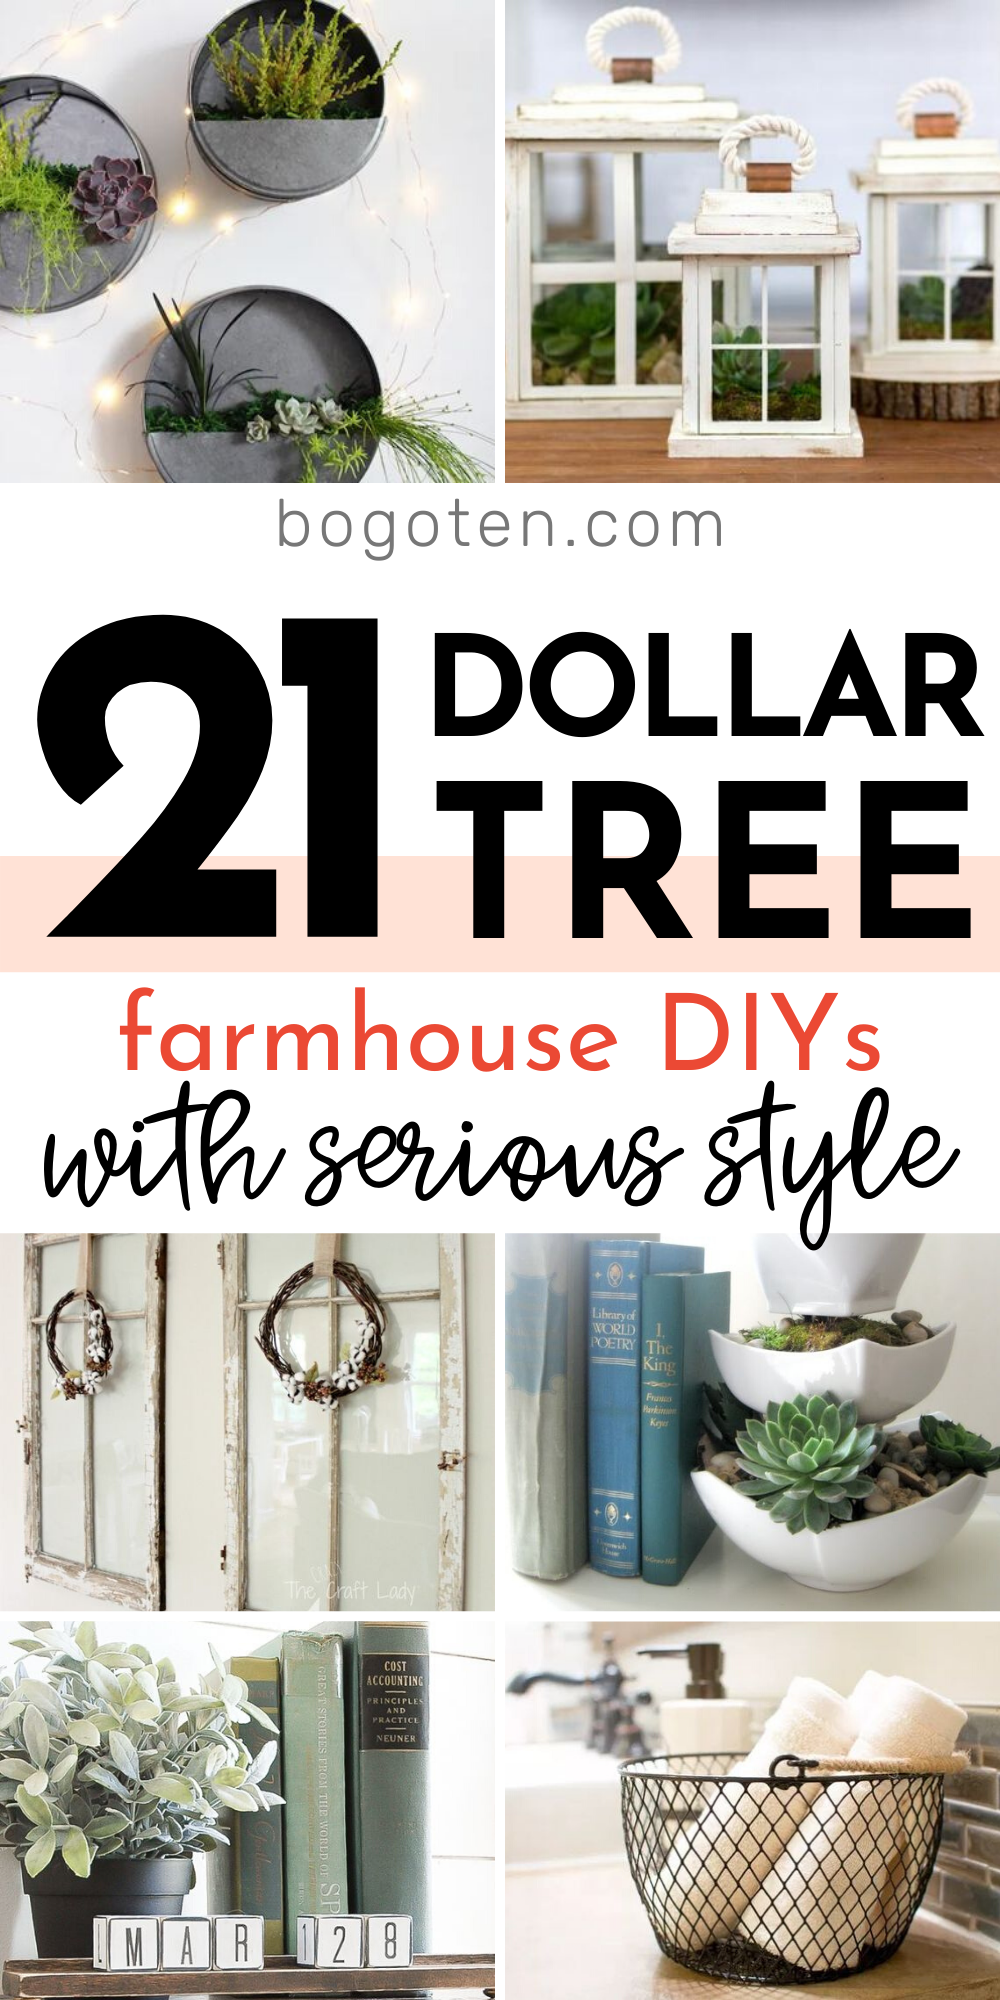 21 Dollar Tree Farmhouse DIYs with Serious Style